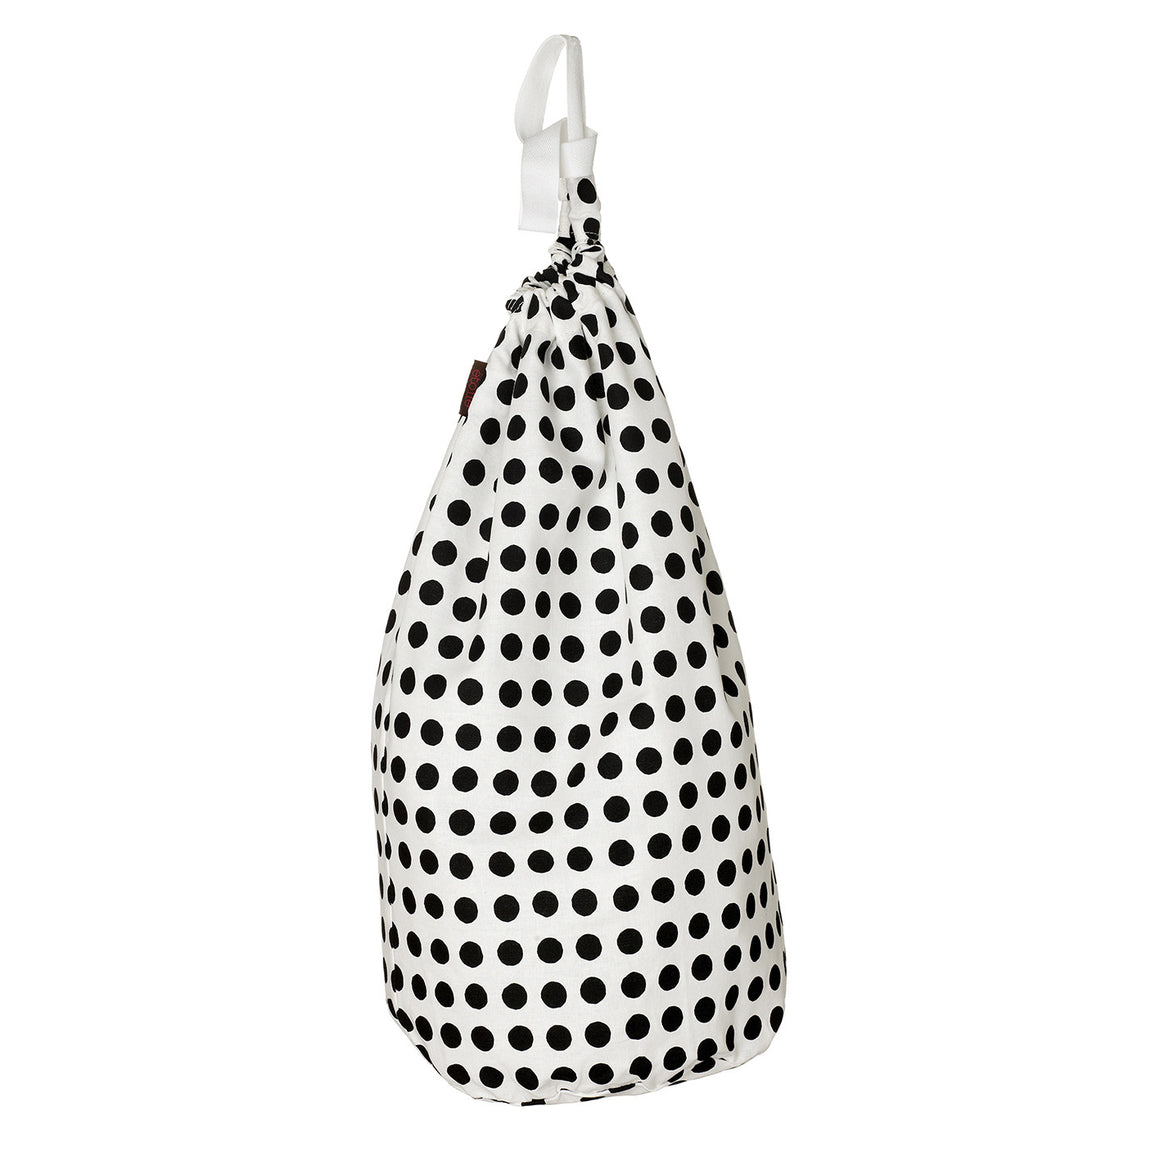 London Polka Dot Spotty Cotton Linen Drawstring Laundry or Storage Bag - Black - Ships from Canada (USA)